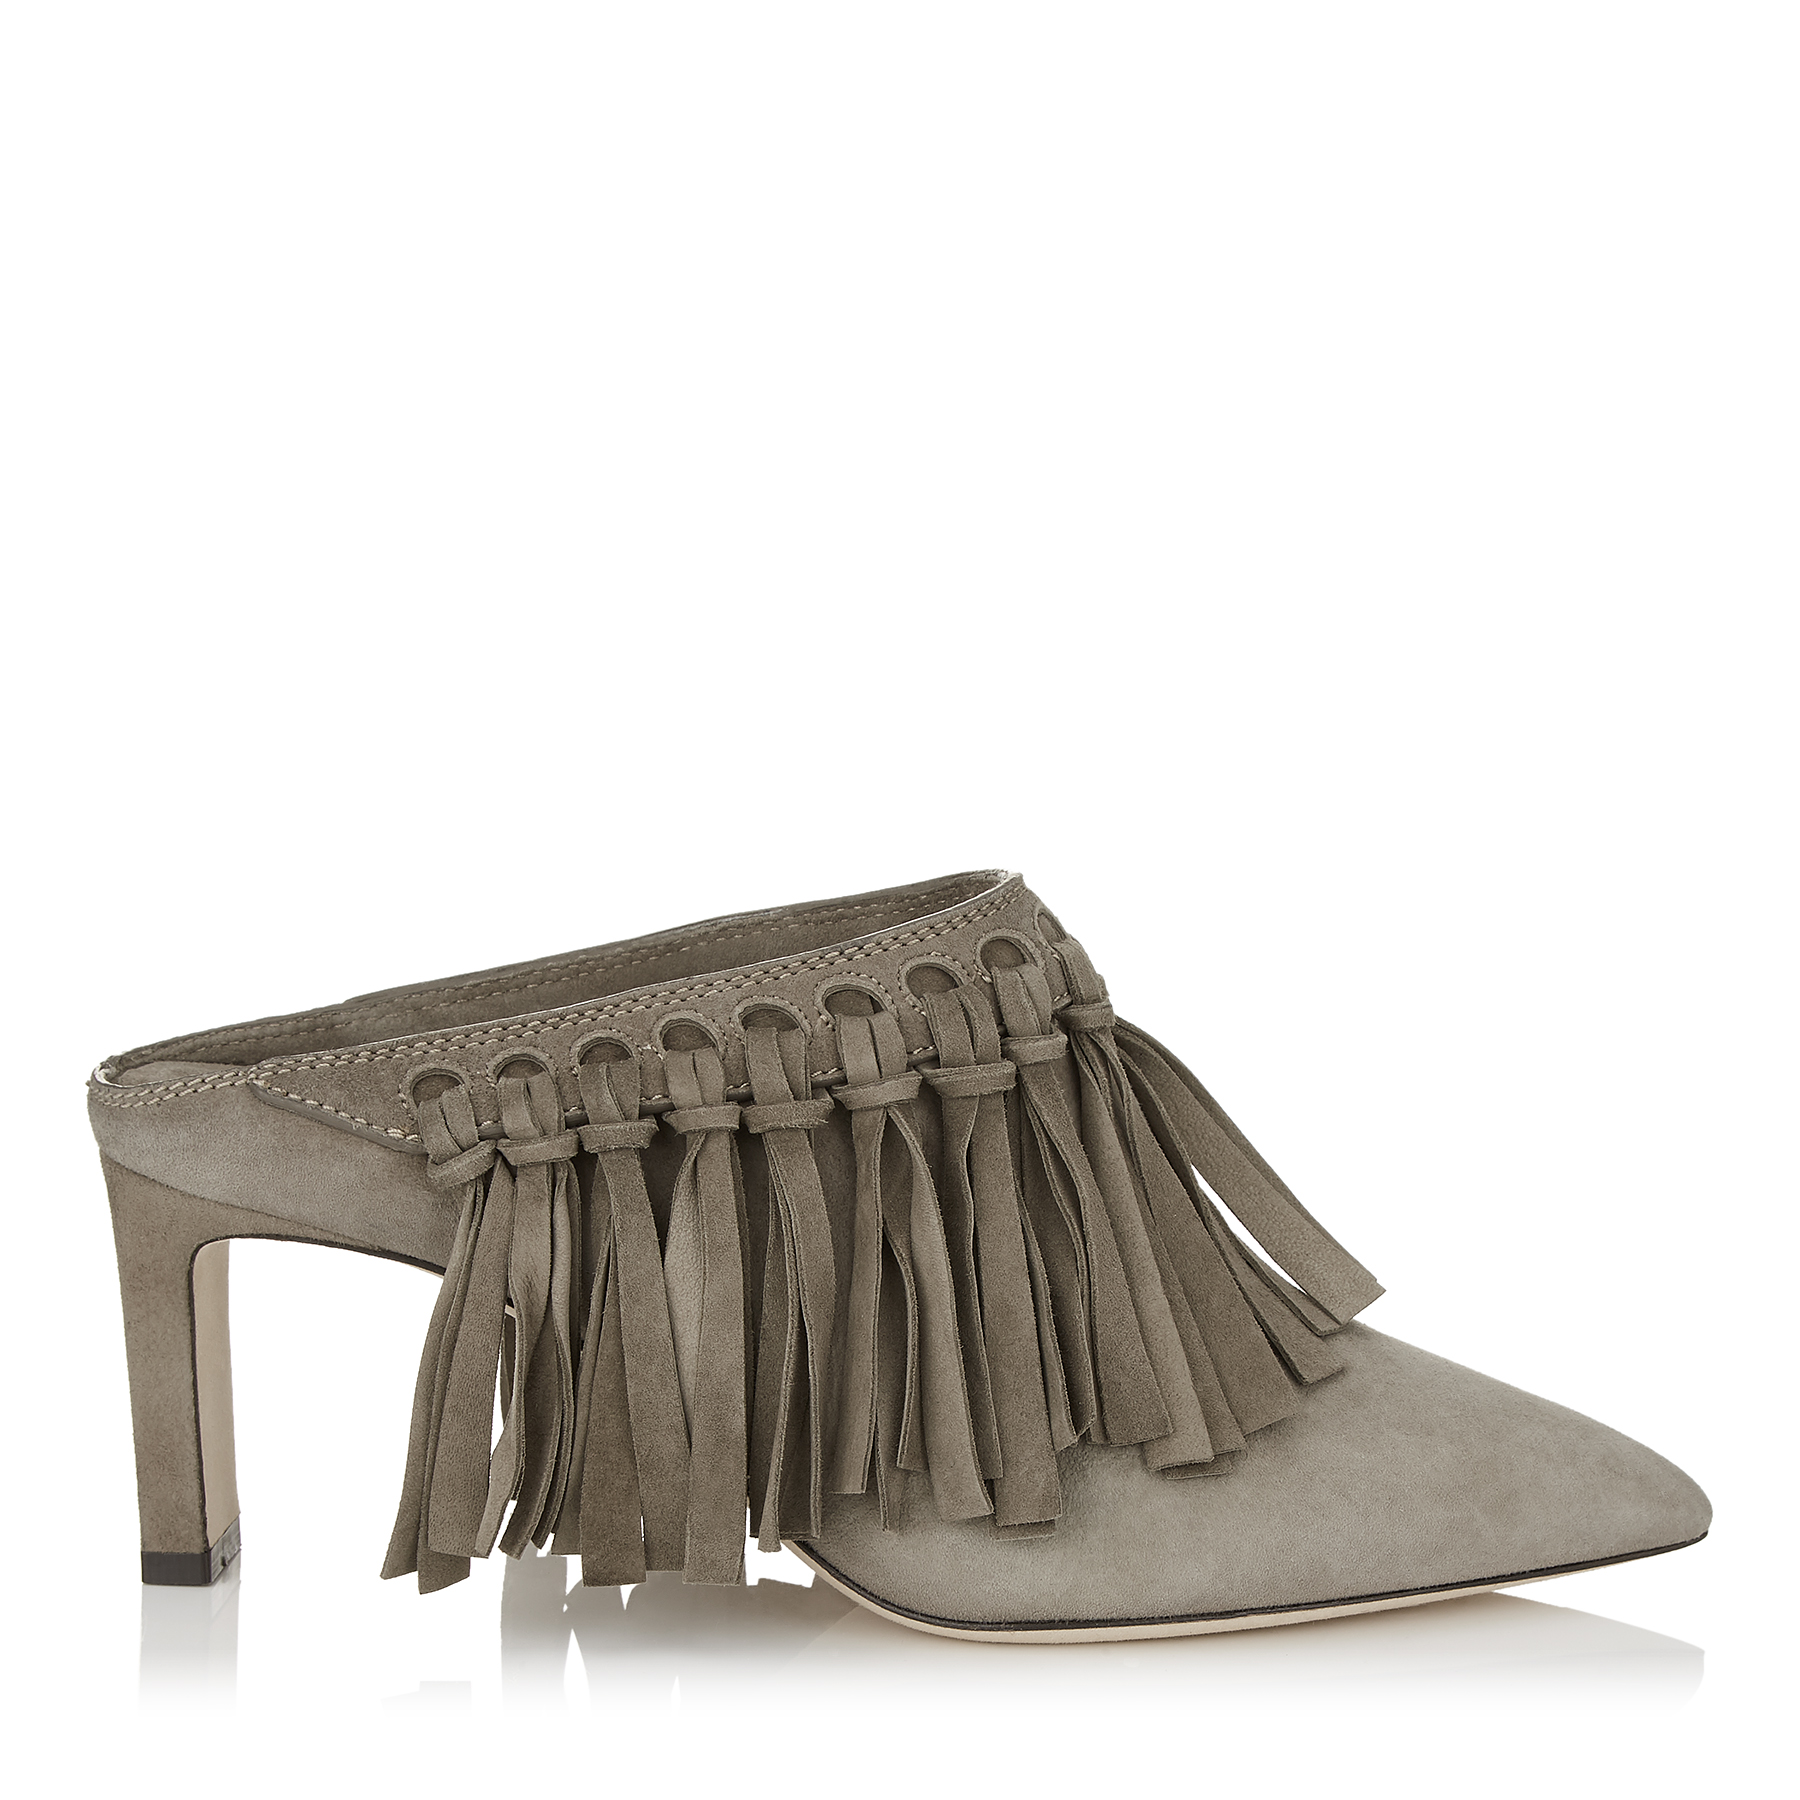 MAZZ 65 Mink Suede Pointy Toe Mules with Fringe Detailing by Jimmy Choo